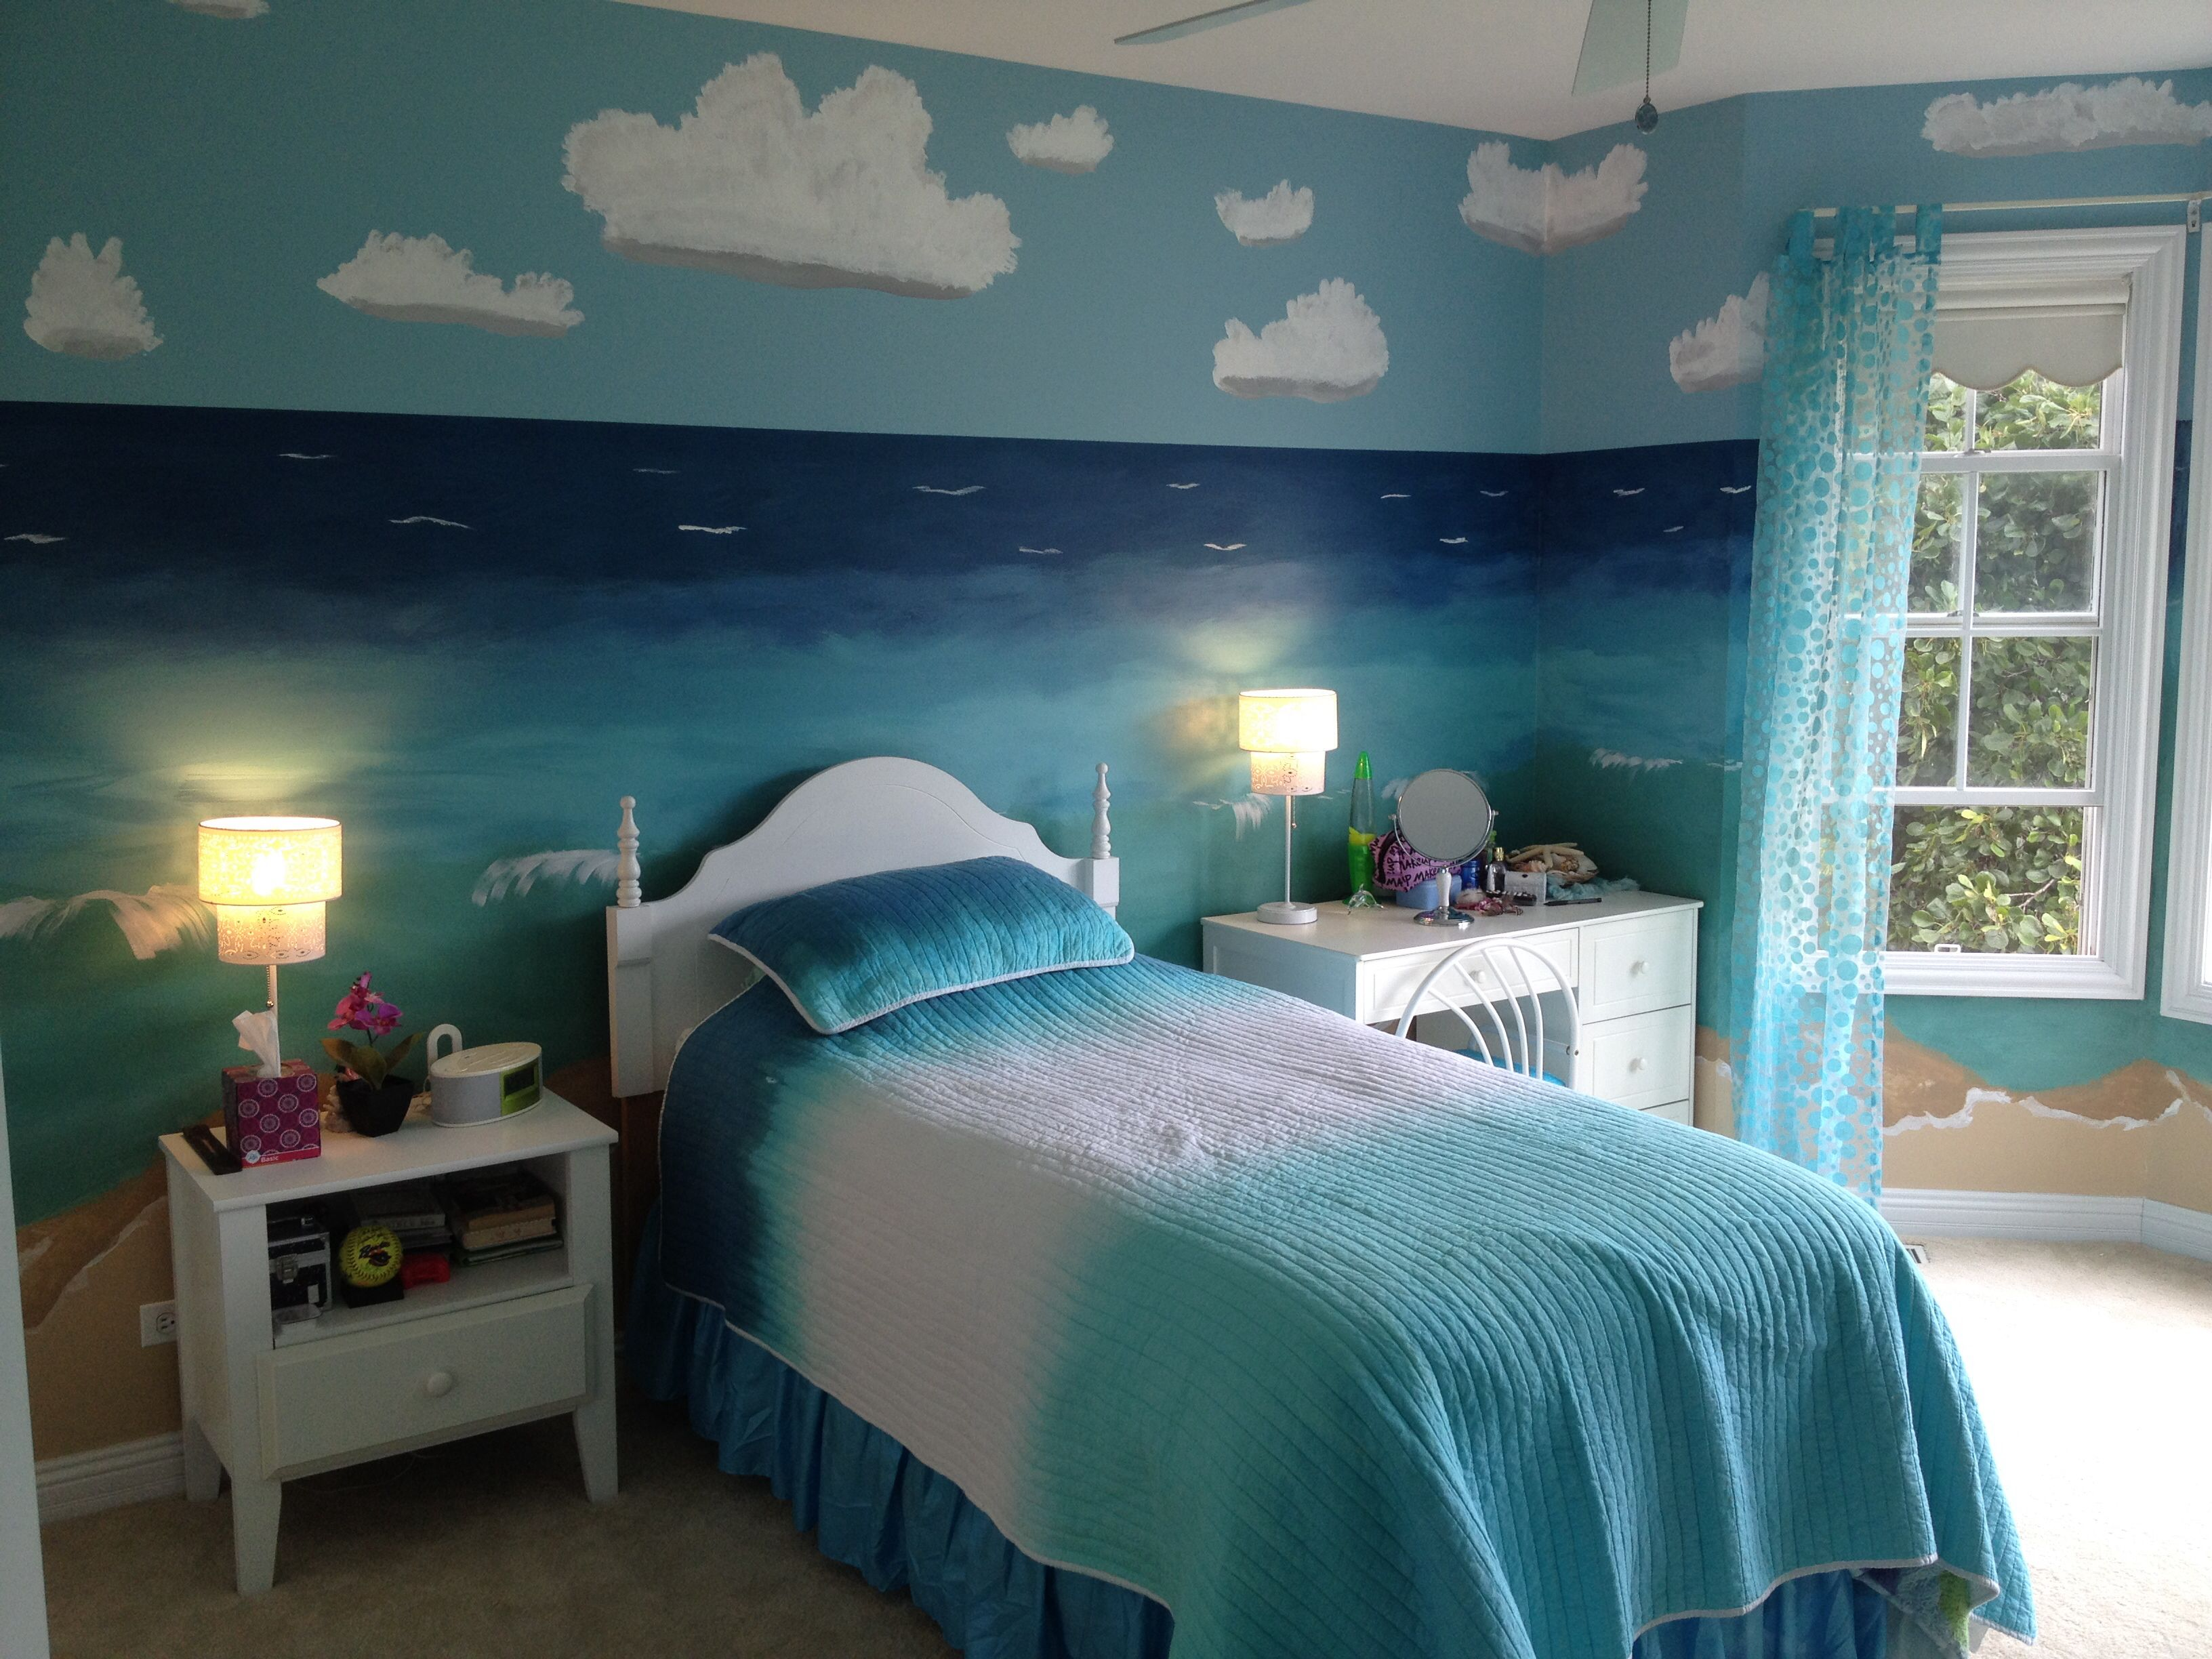 Bedroom Padded Single Bed Plus Blue Bedding Fit Ocean Wall Painting Combine  With Nightstand Light Equipped With Ceiling Fan Mesmerizing Bedroom With  Ocean ...